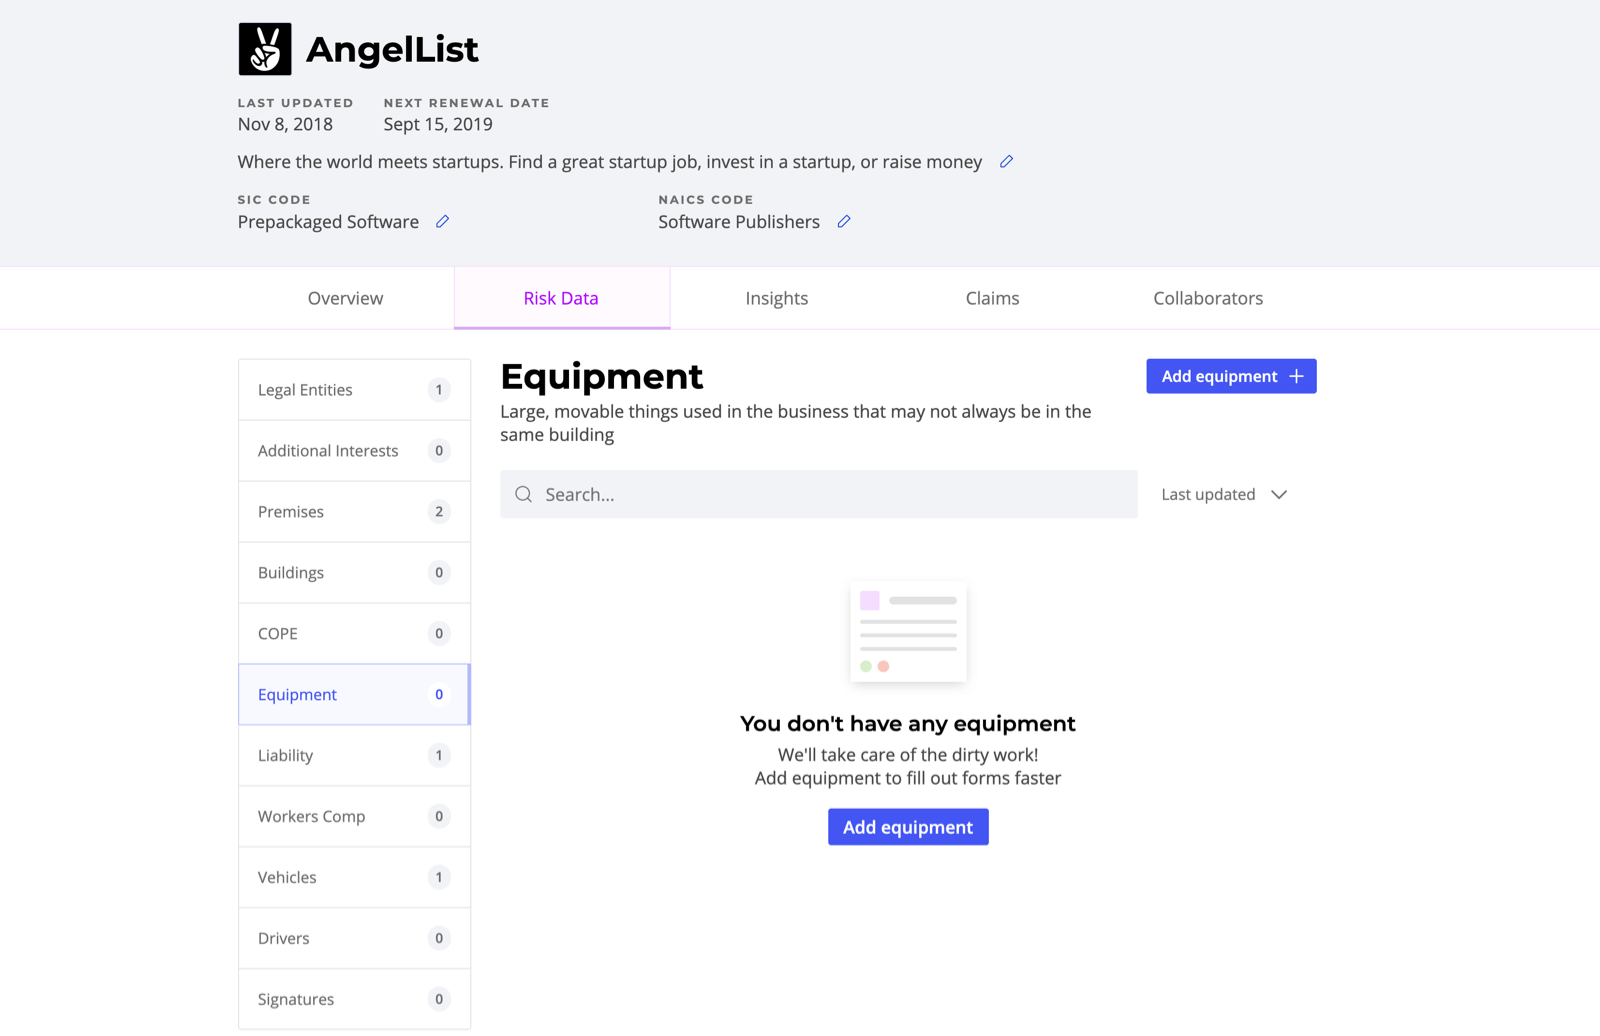 The empty state of the equipment Risk Data section of AngelList's profile